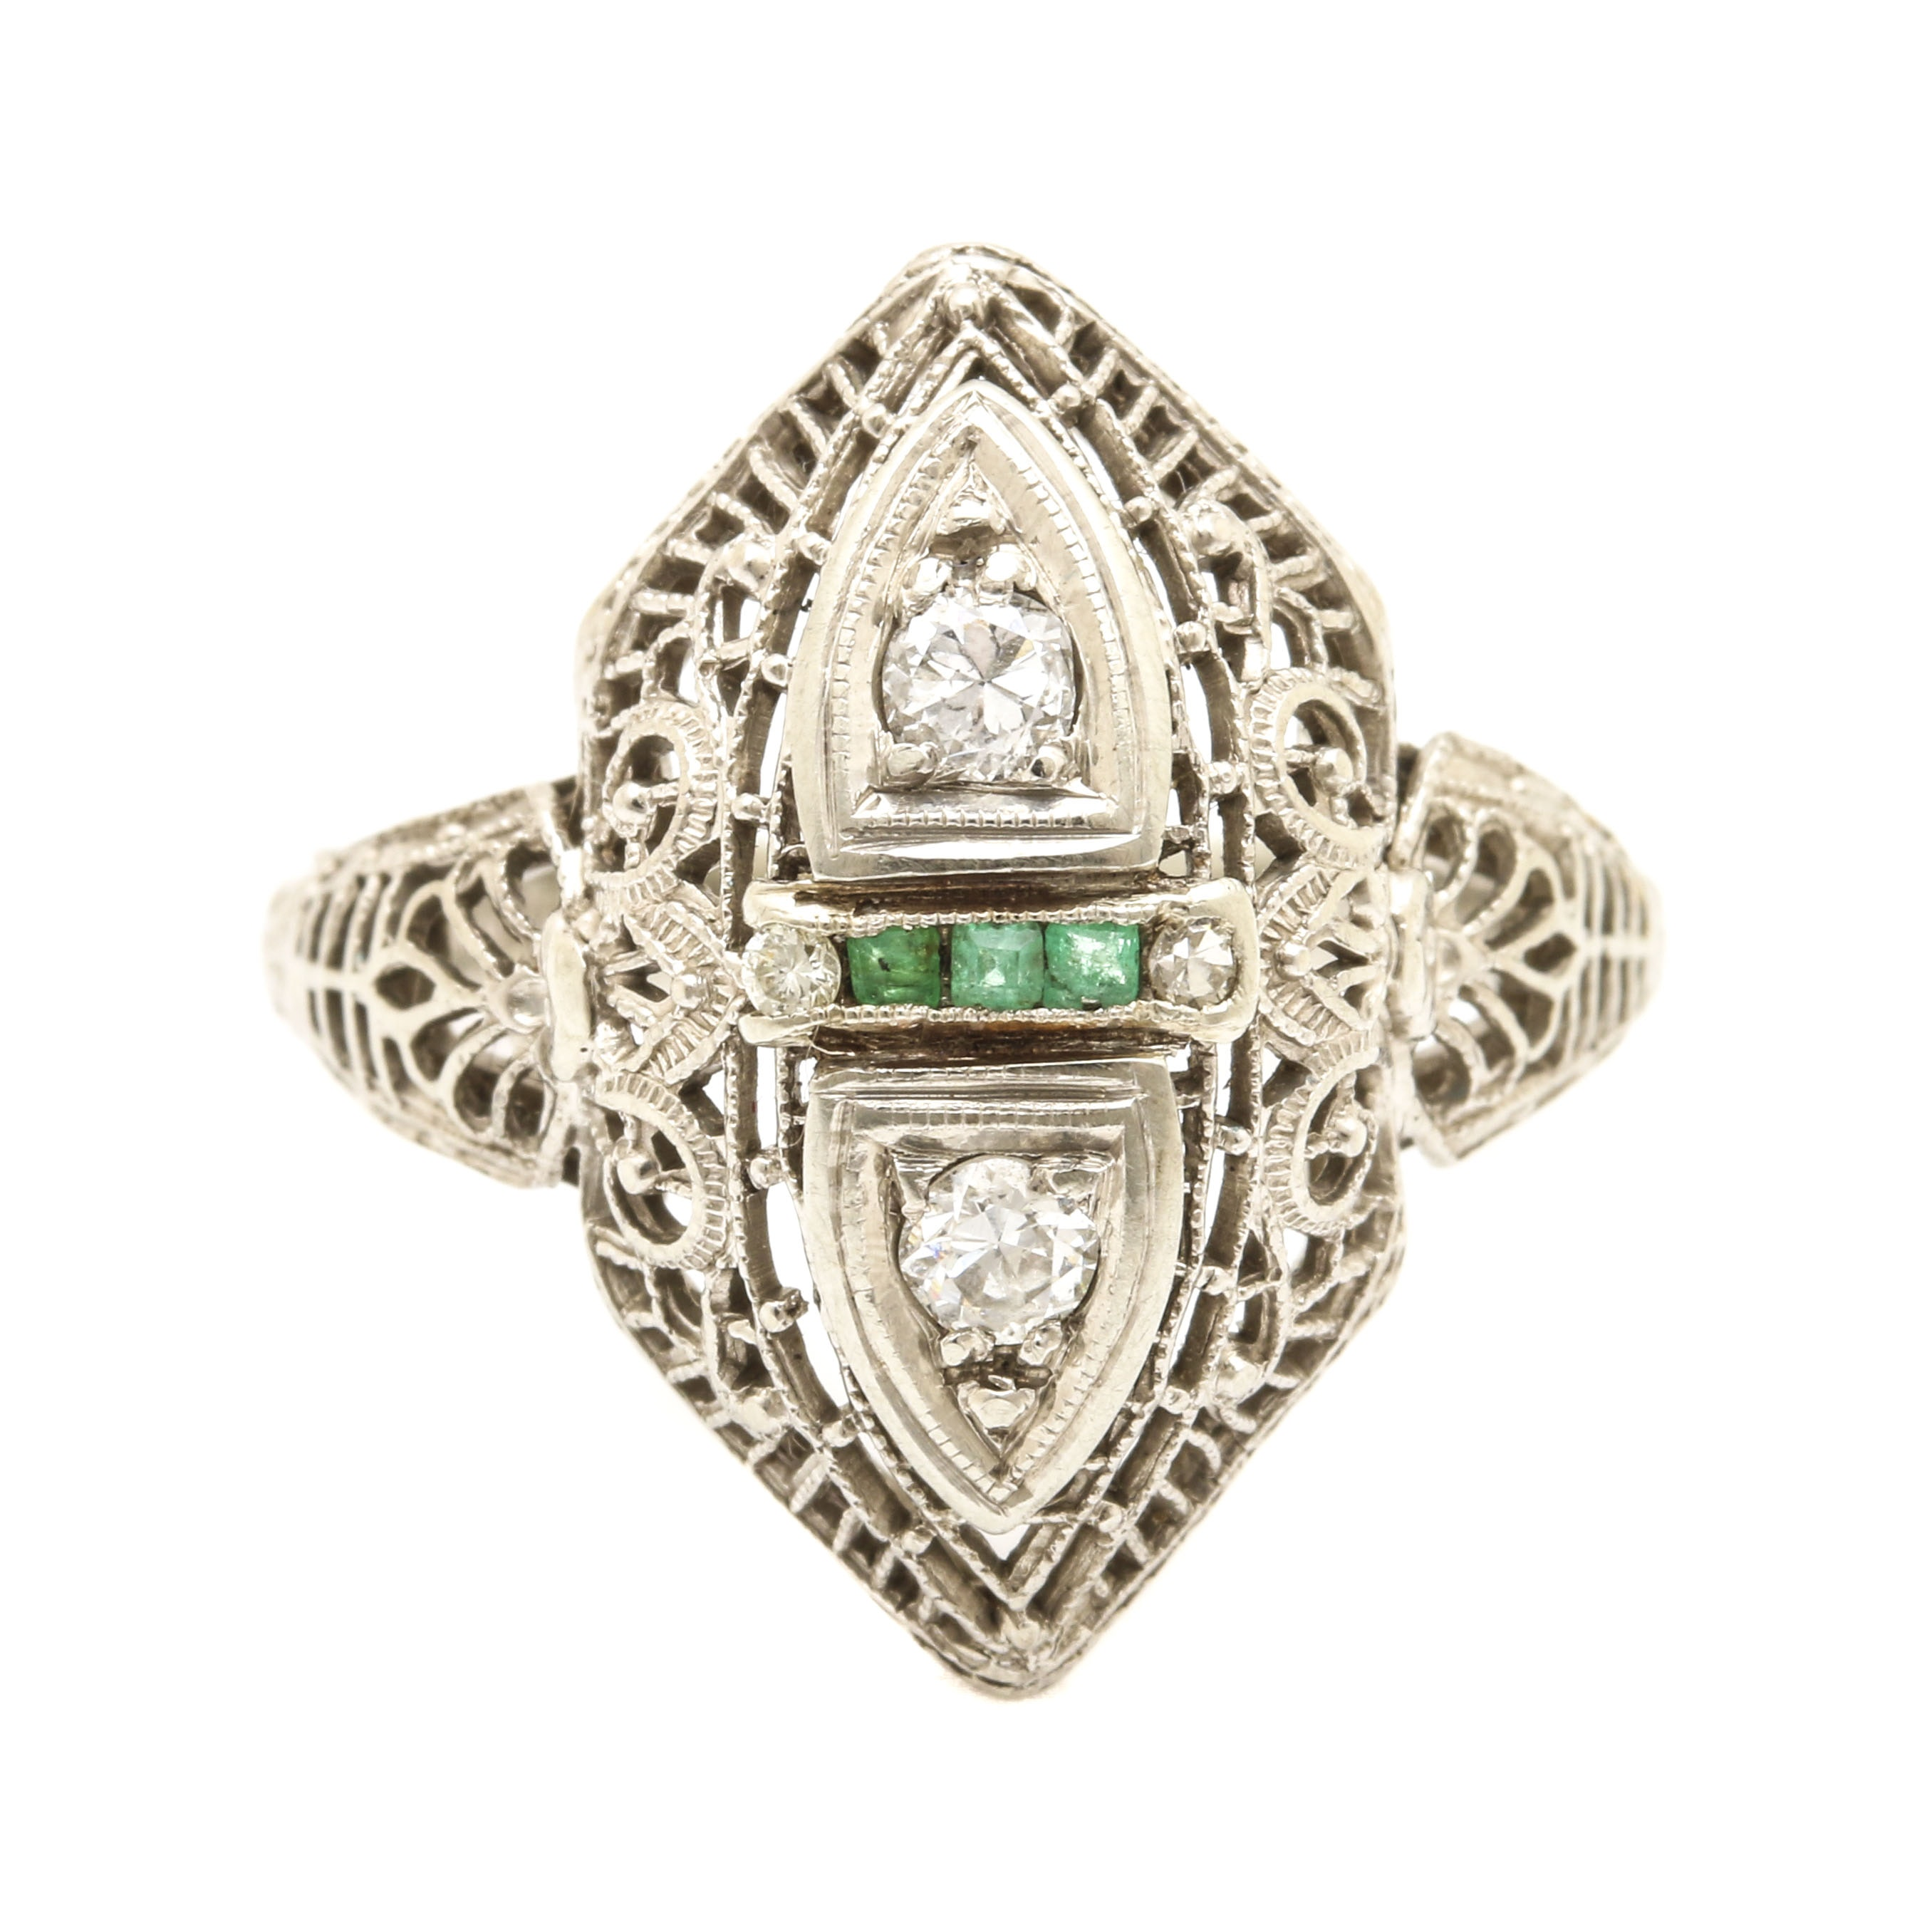 18K White Gold and Platinum Emerald and Diamond Ring